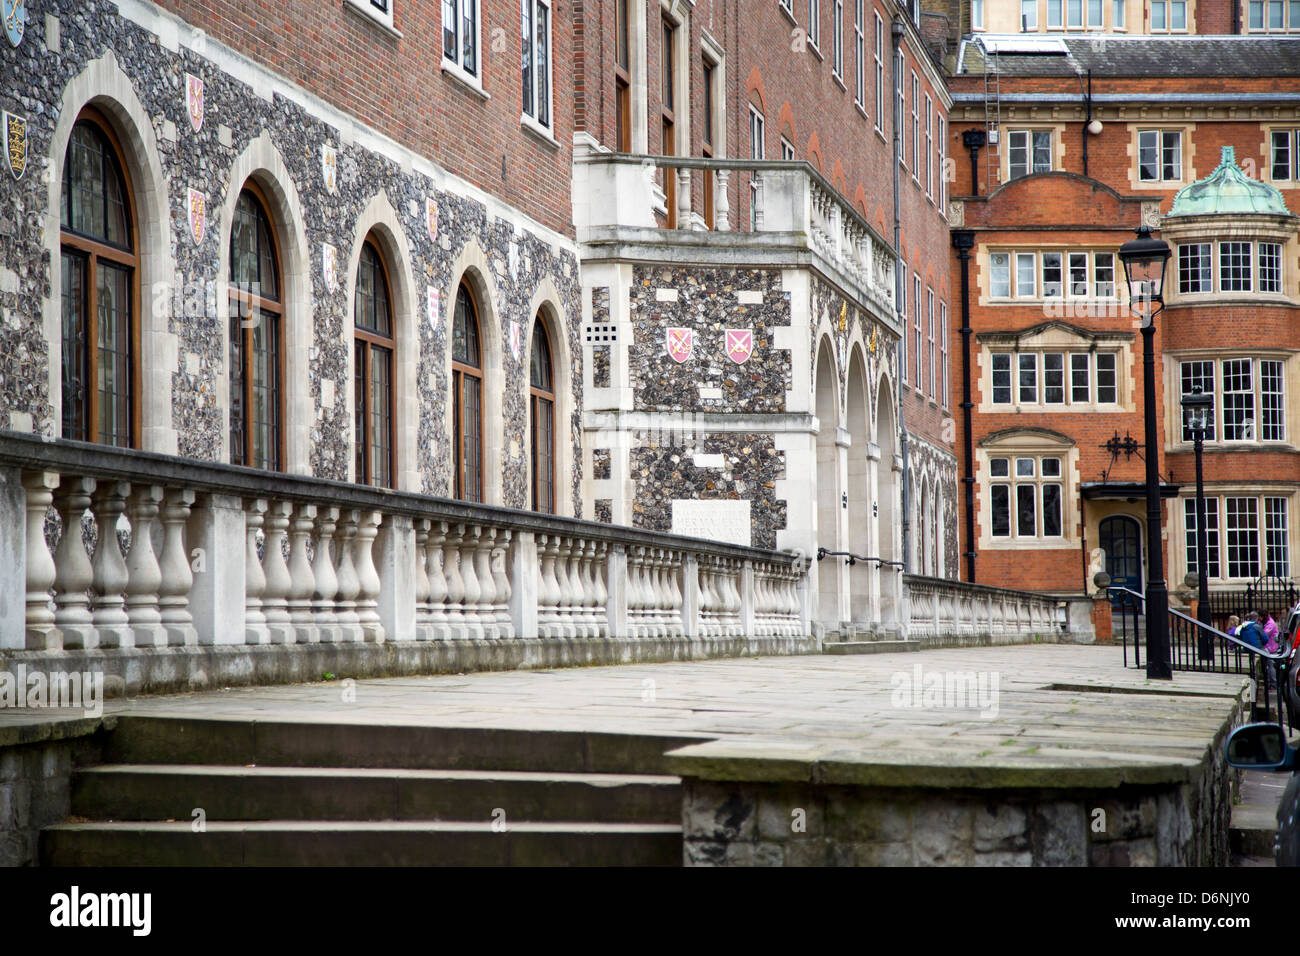 Westminster School private public Dean's Yard Abbey precincts - Stock Image